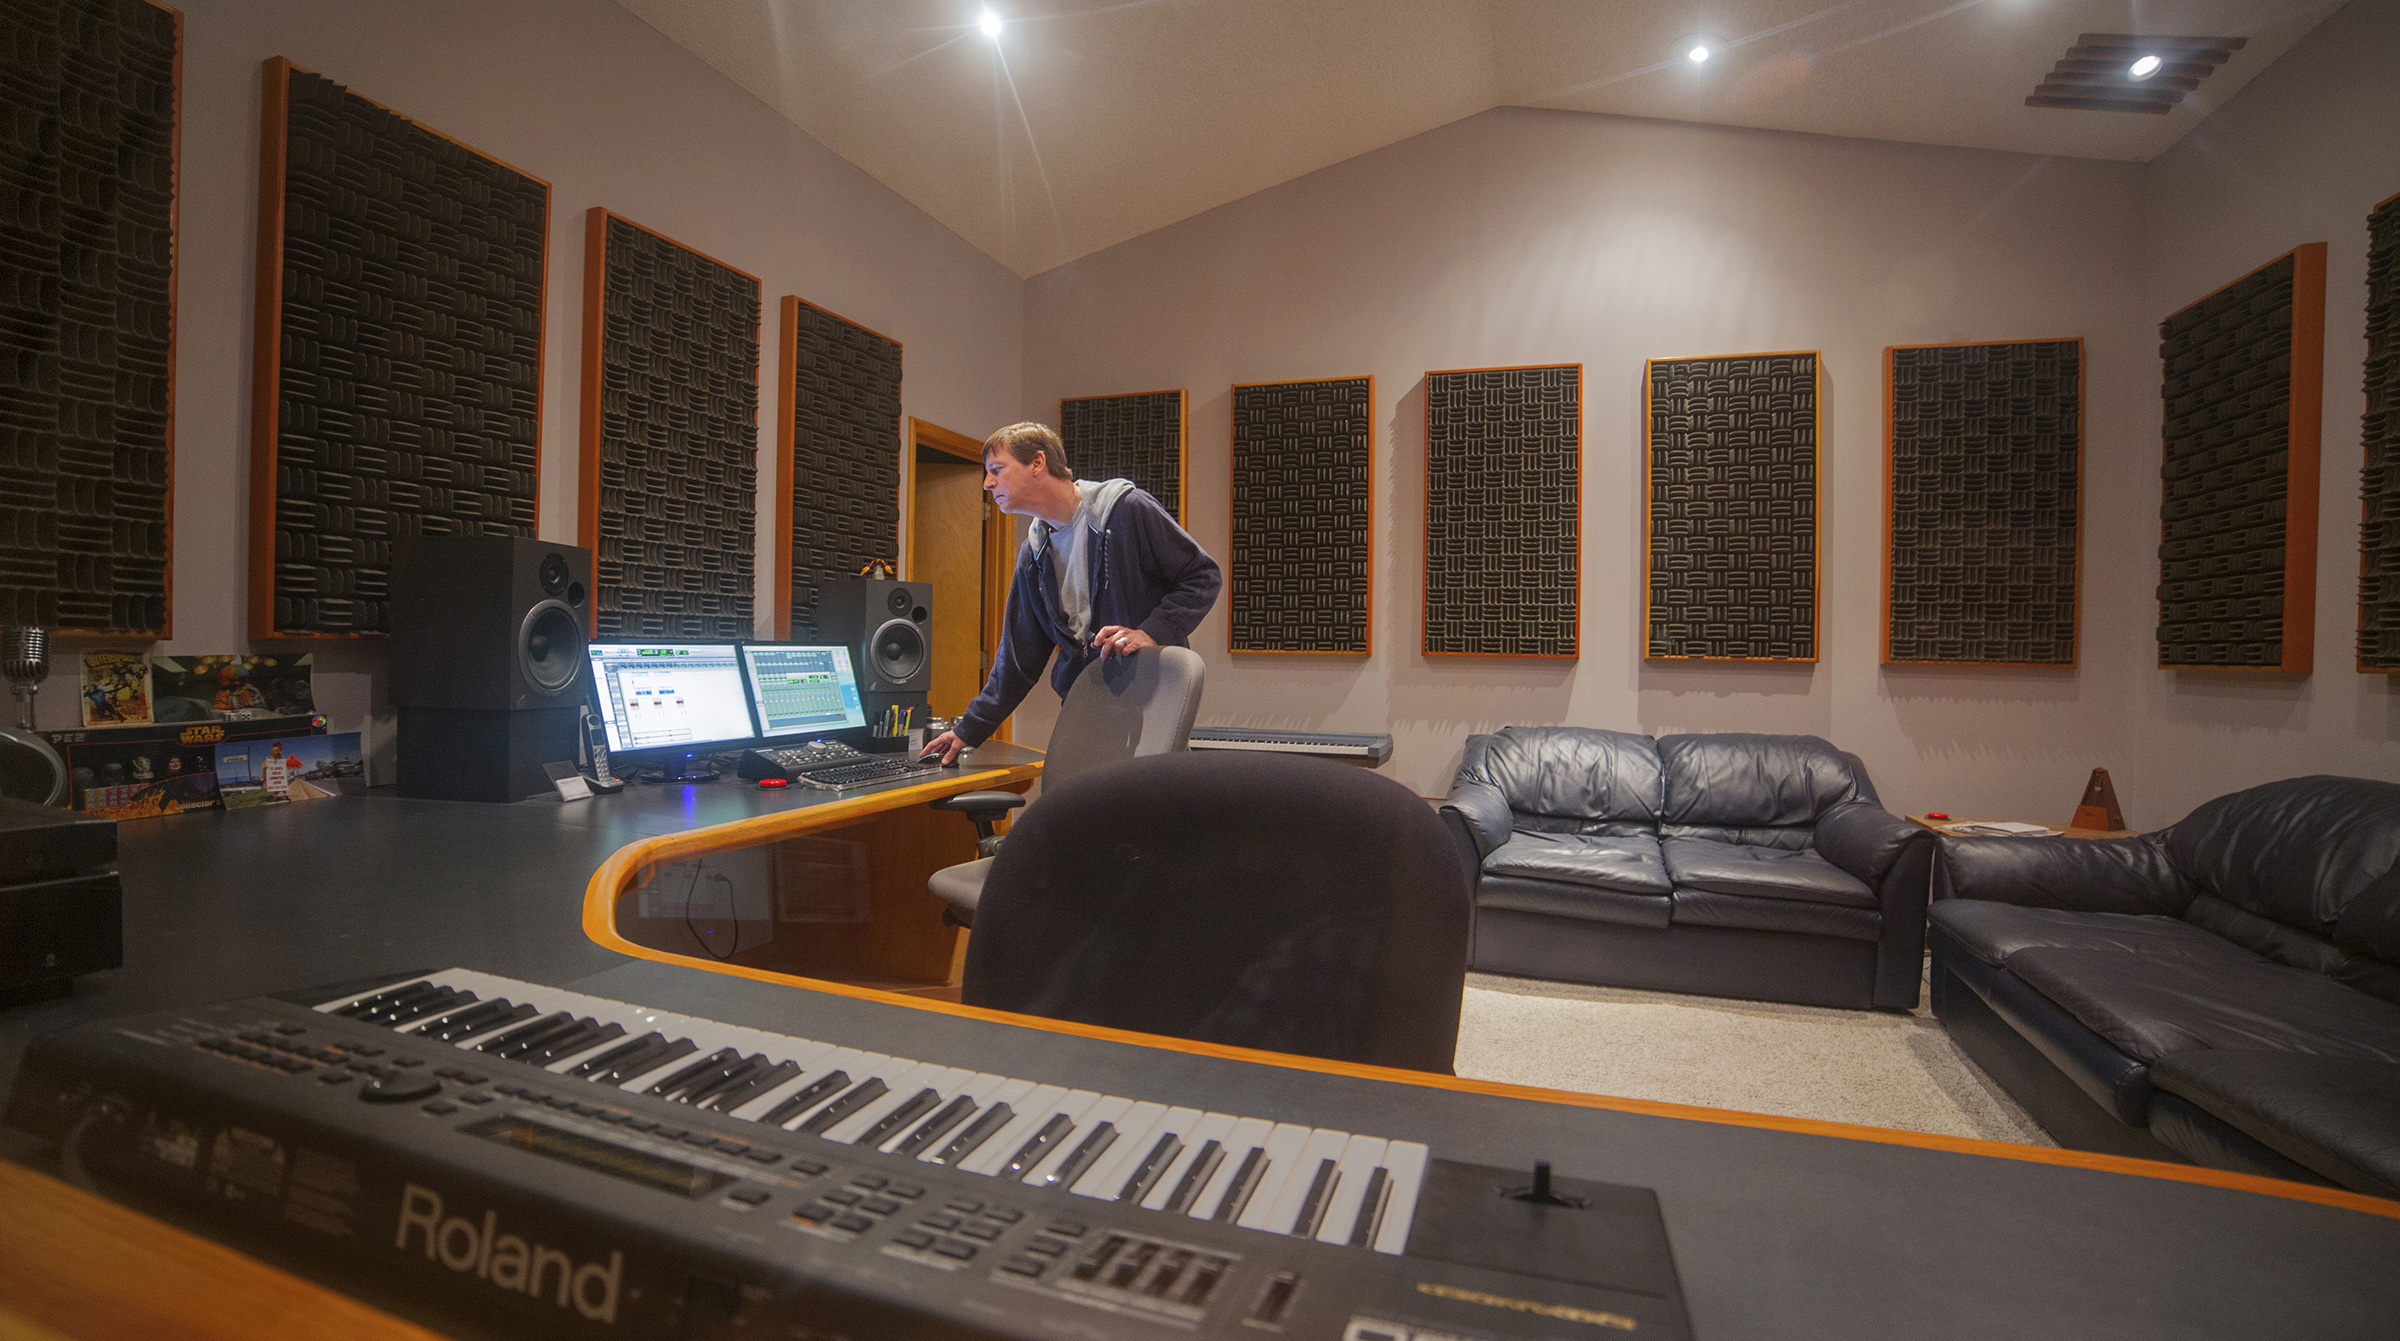 Where else can you find Pro Tools HD, an isolated listening environment, world-class audio engineering talent and comfy leather sofas at basement studio rates? Whether you're creating radio spots, tracking an original score, recording Foleys or mixing to picture, there's nowhere better than WaveGuide Studios.